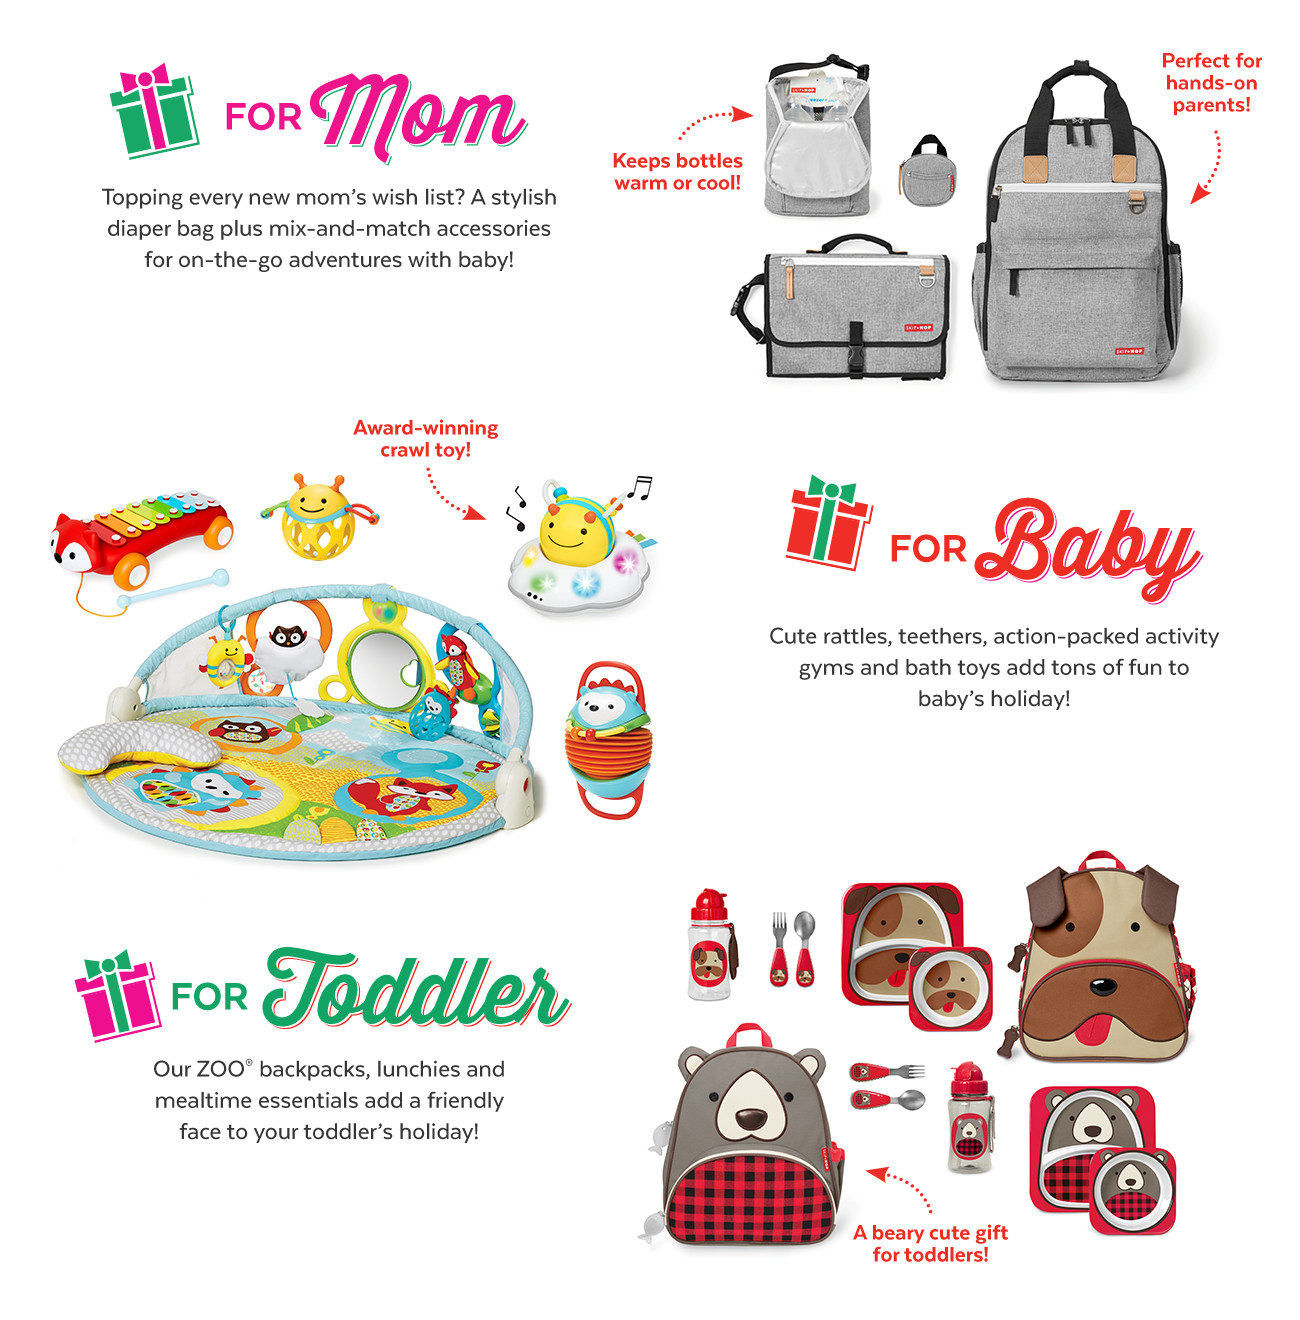 FOR MOM | For Baby | for toddler | tapping every new mom's wish list? a stylish diaper bag | cute rattles, teethers, action packed activity gyms and bath toys | our Zoo backpacks, lunchies and mealtime essentials.